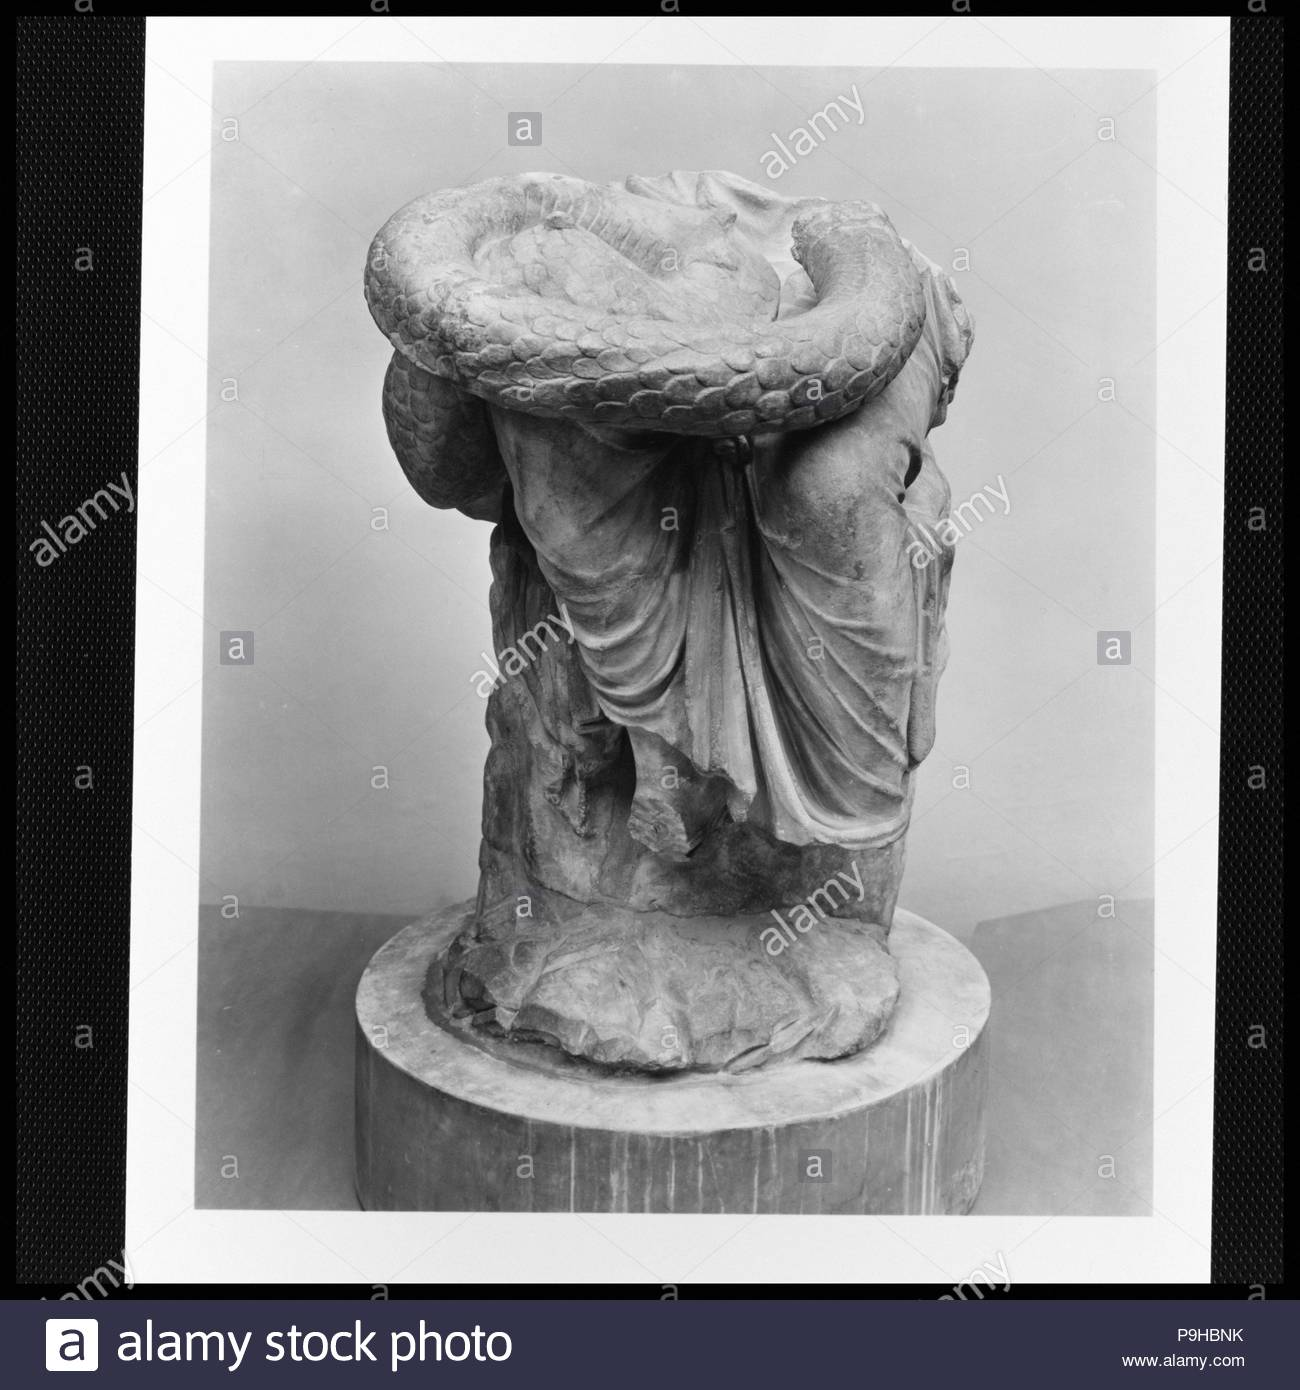 Lower part of a marble seated statue of Hygieia, Imperial, 1st or 2nd century A.D., Roman, Marble, H. 50 in. (127.0 cm), Stone Sculpture, Copy or adaptation of a Greek work of the 3rd or 2nd century B.C. Hygieia, the personification of Health, was the daughter of Asklepios, the god of healing. Snakes were closely associated with both figures and were actually kept in many of the sanctuaries where the sick gathered. - Stock Image